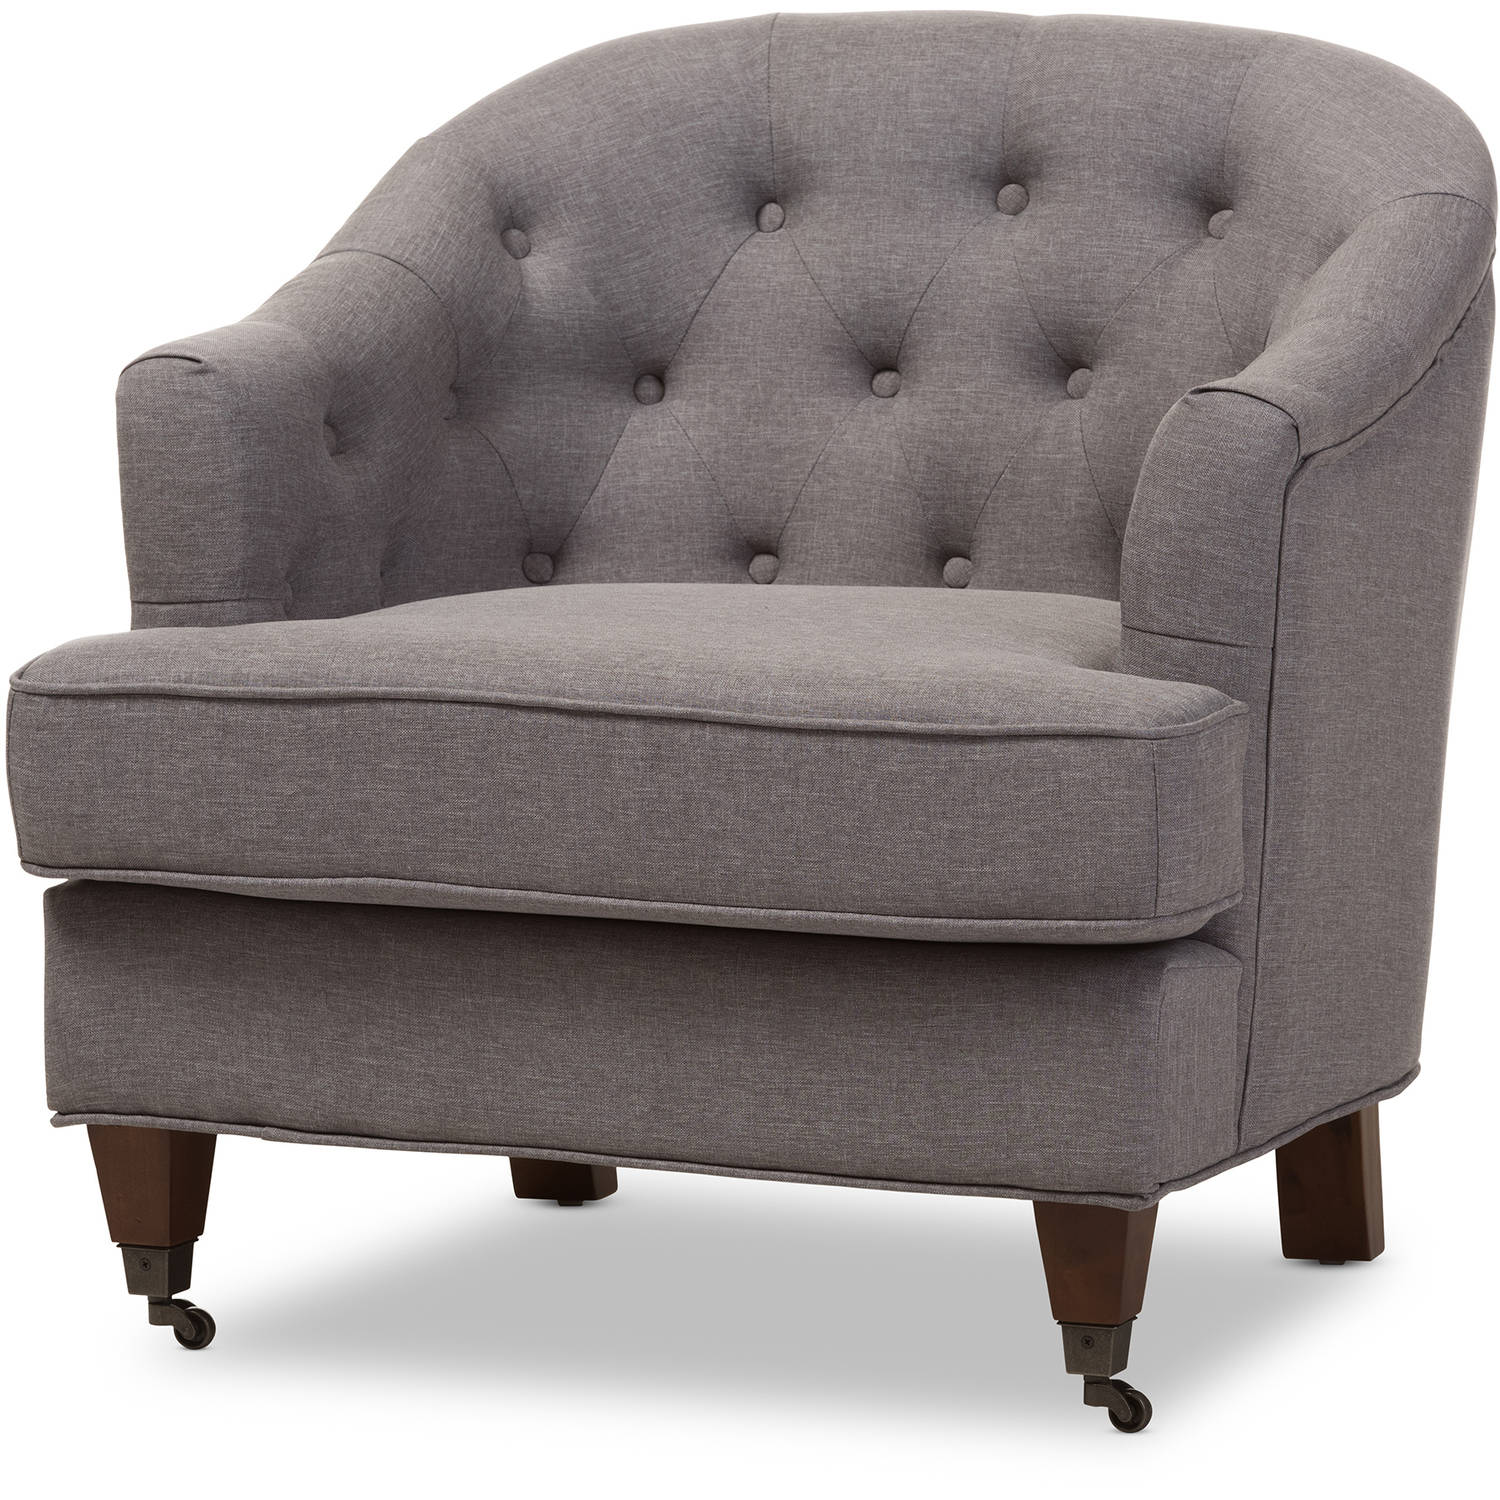 Baxton Studio Jilian Modern and Contemporary Light Gray Fabric Upholstered Walnut Wood Button-Tufted Armchair by Baxton Studio